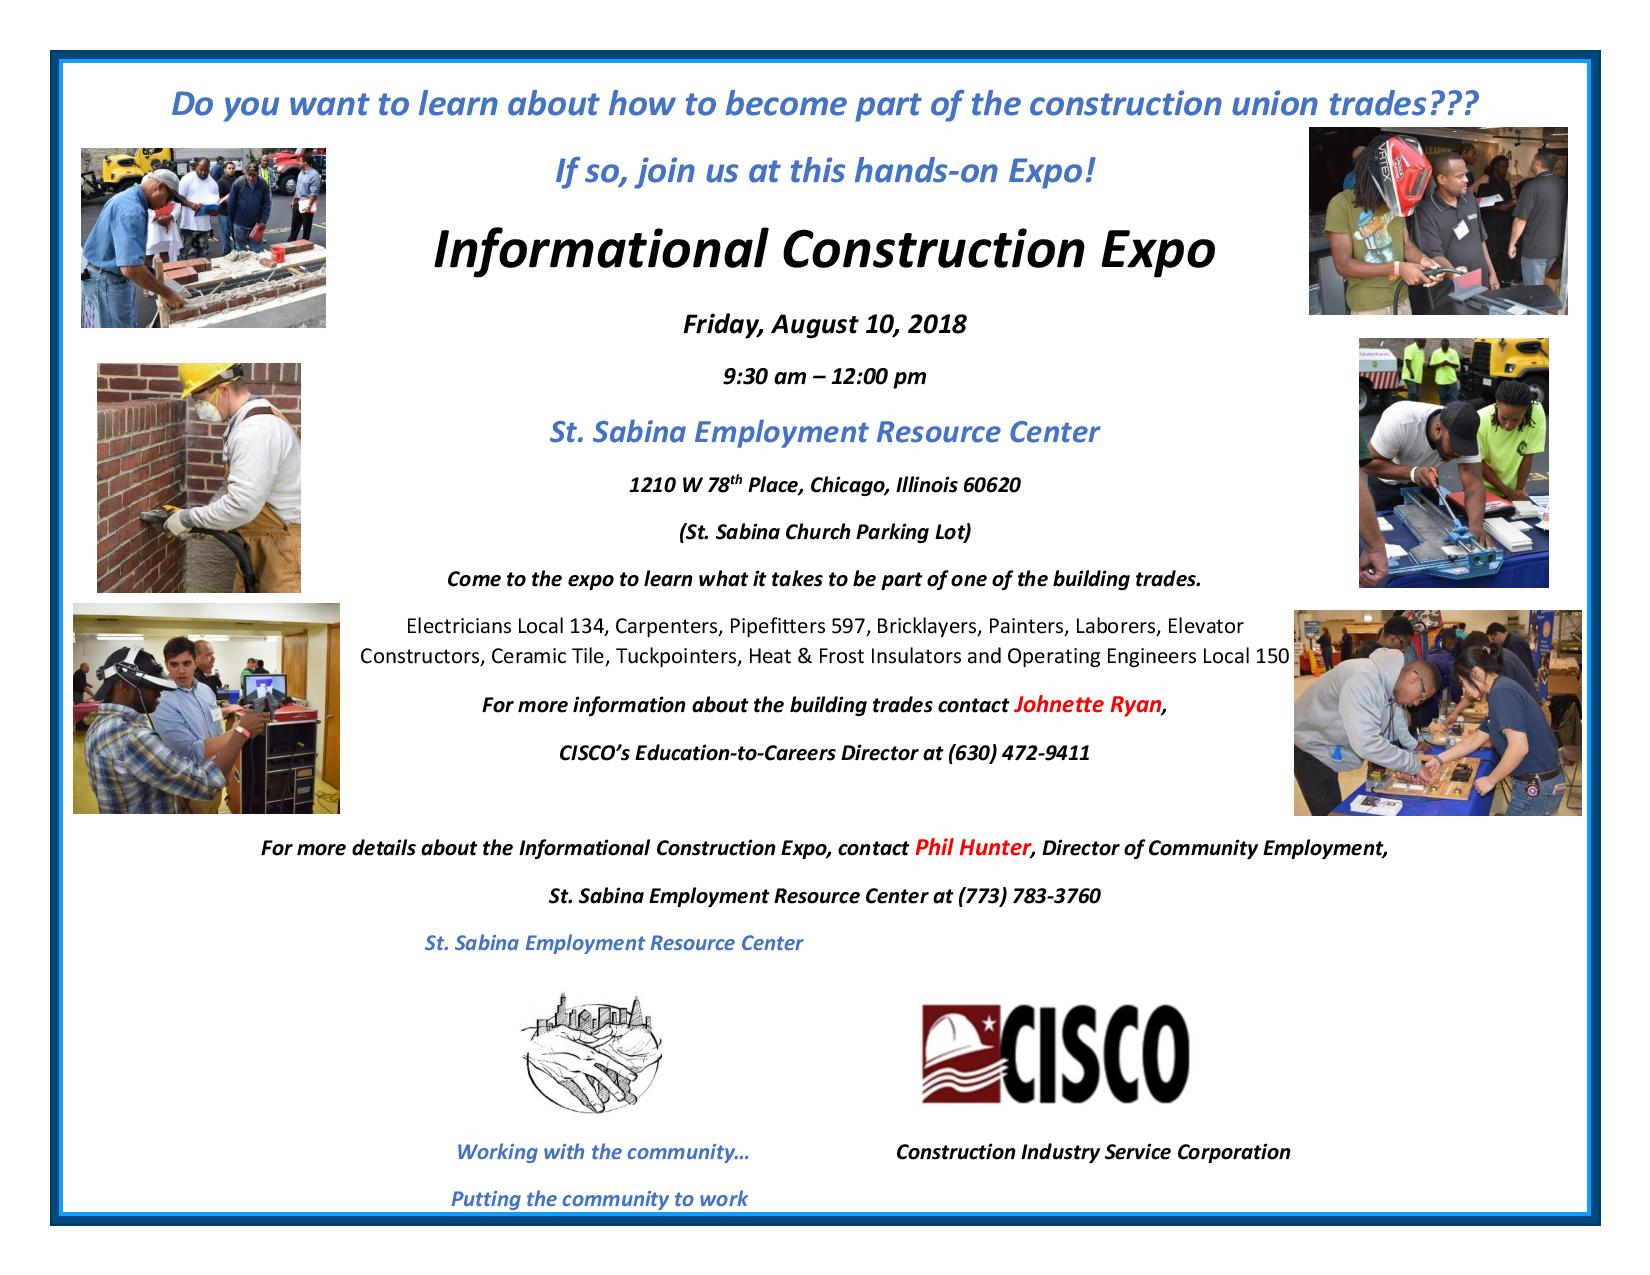 Do you want to learn about how to become part of the construction union trades-page-001.jpg